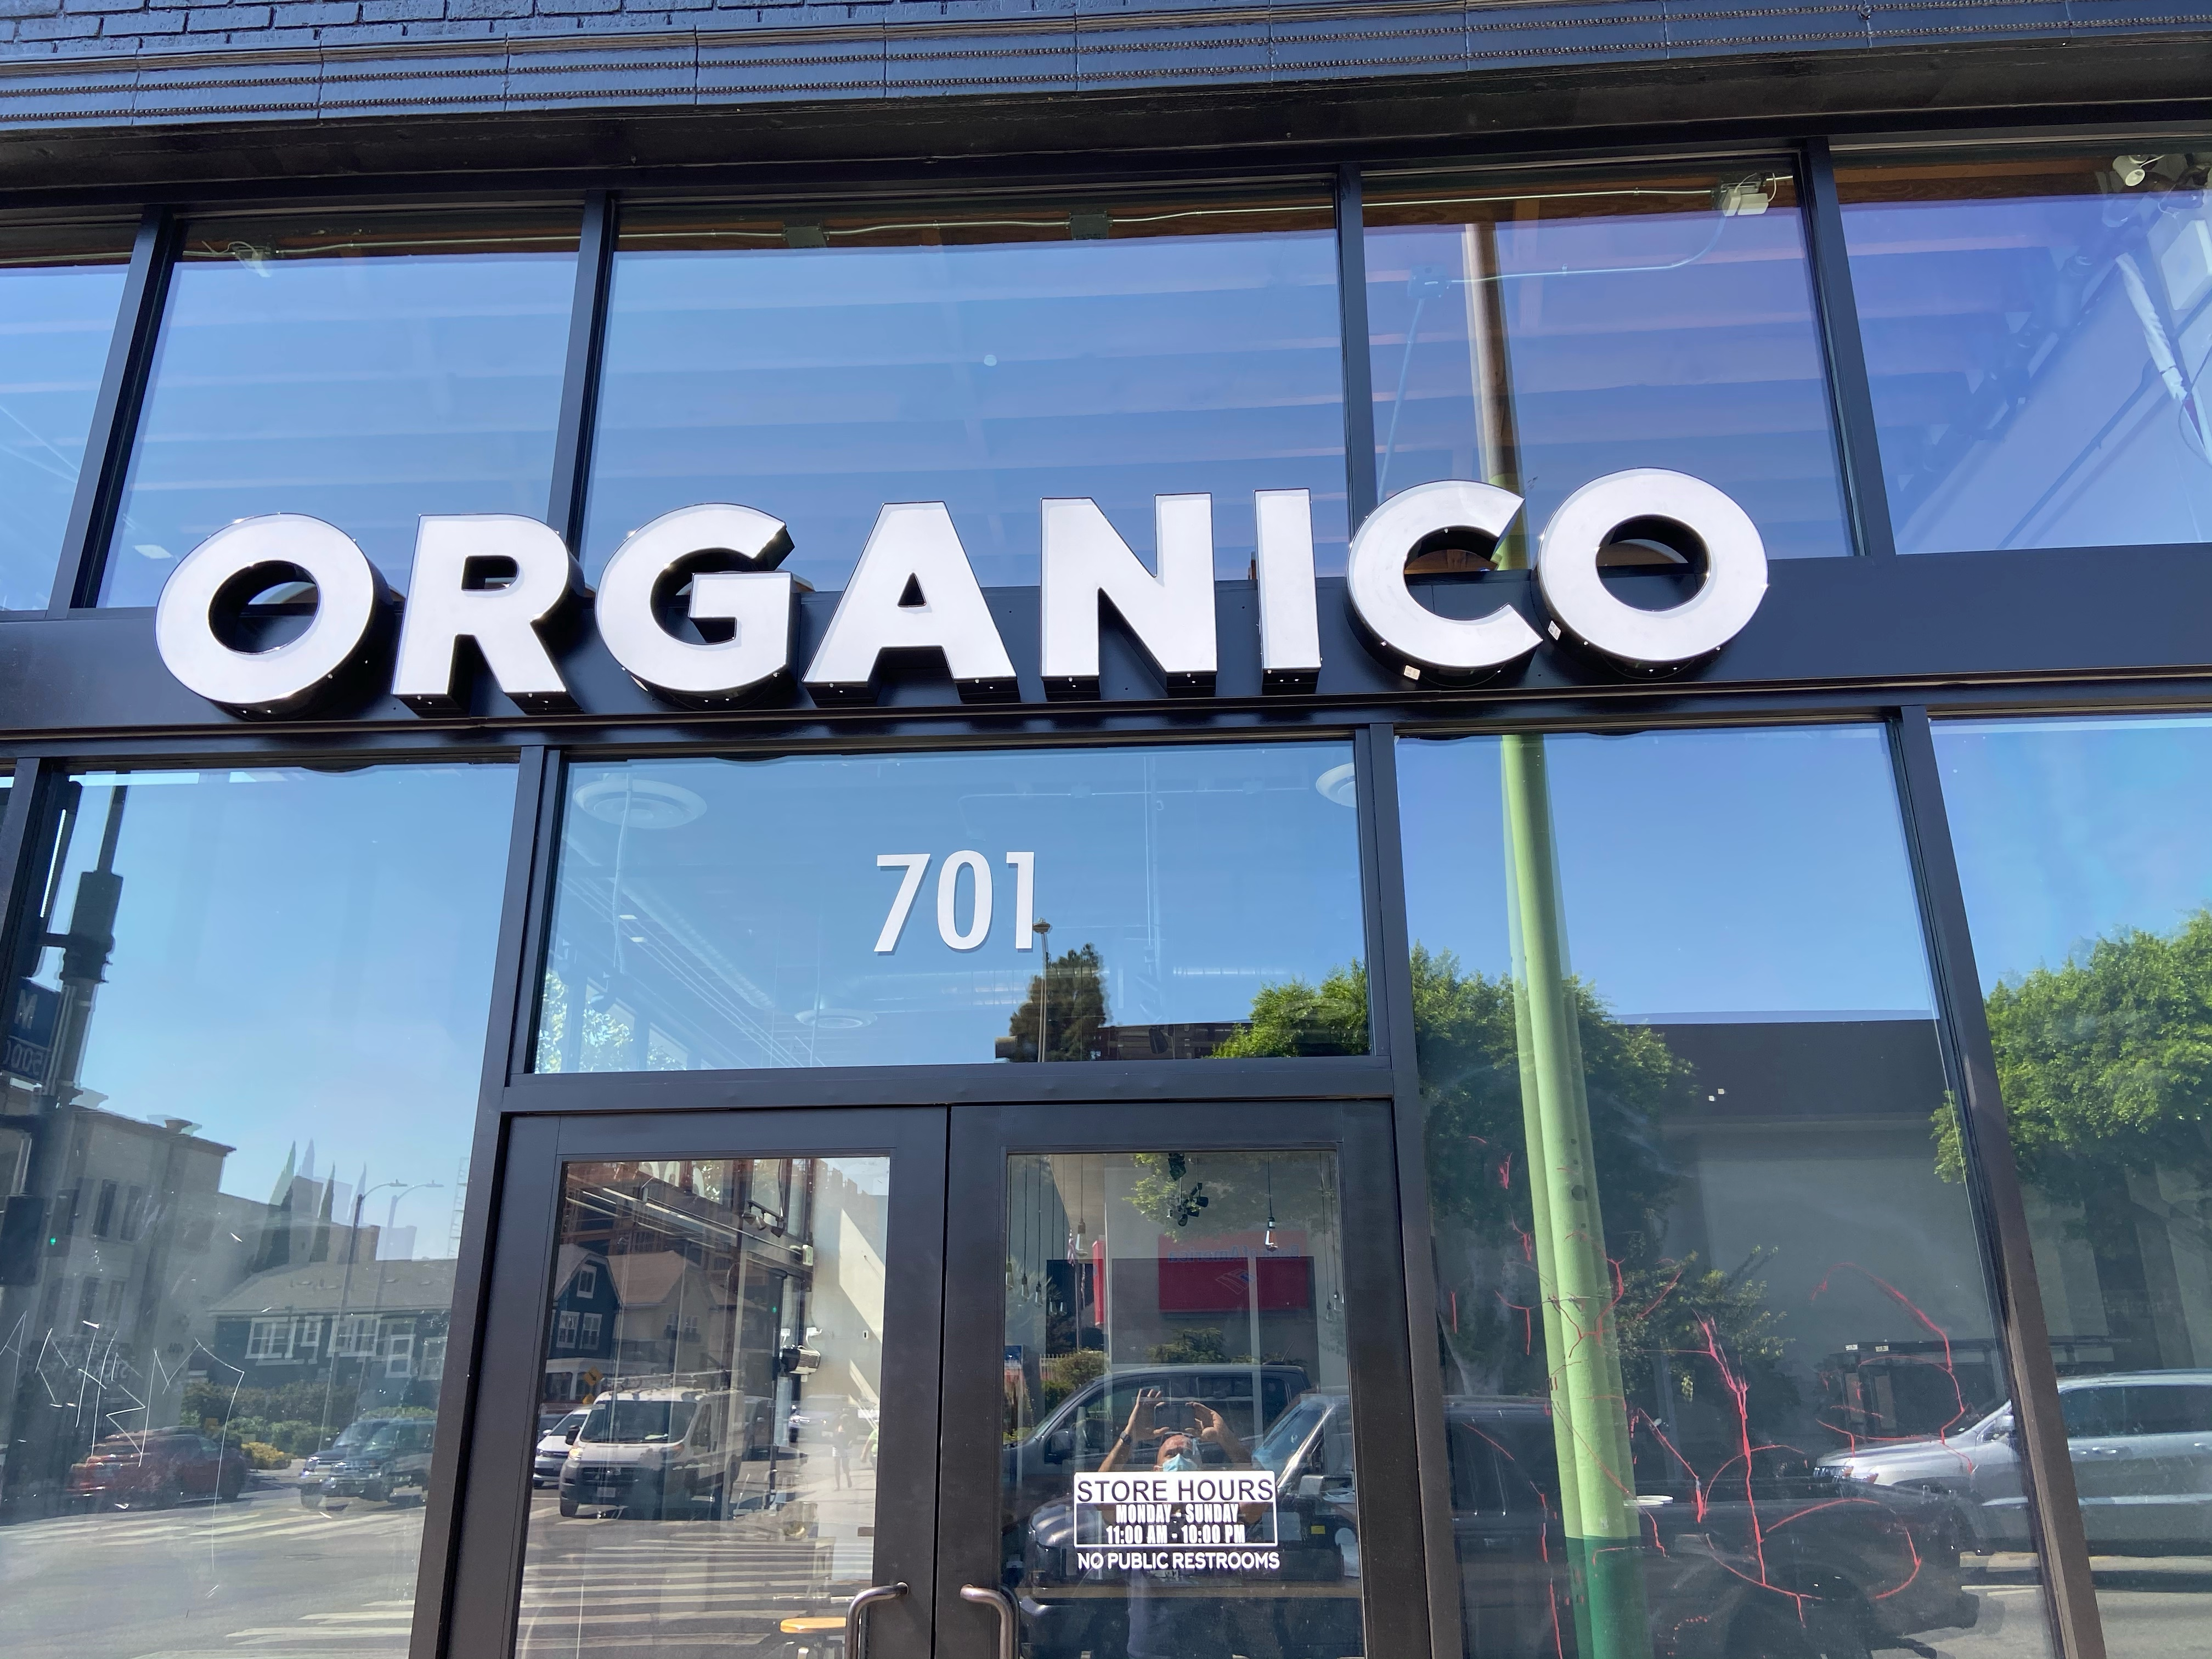 Two sets of front-lit restaurant channel letters we built and installed for Organico, the Los Angeles delivery and take-out only restaurant.